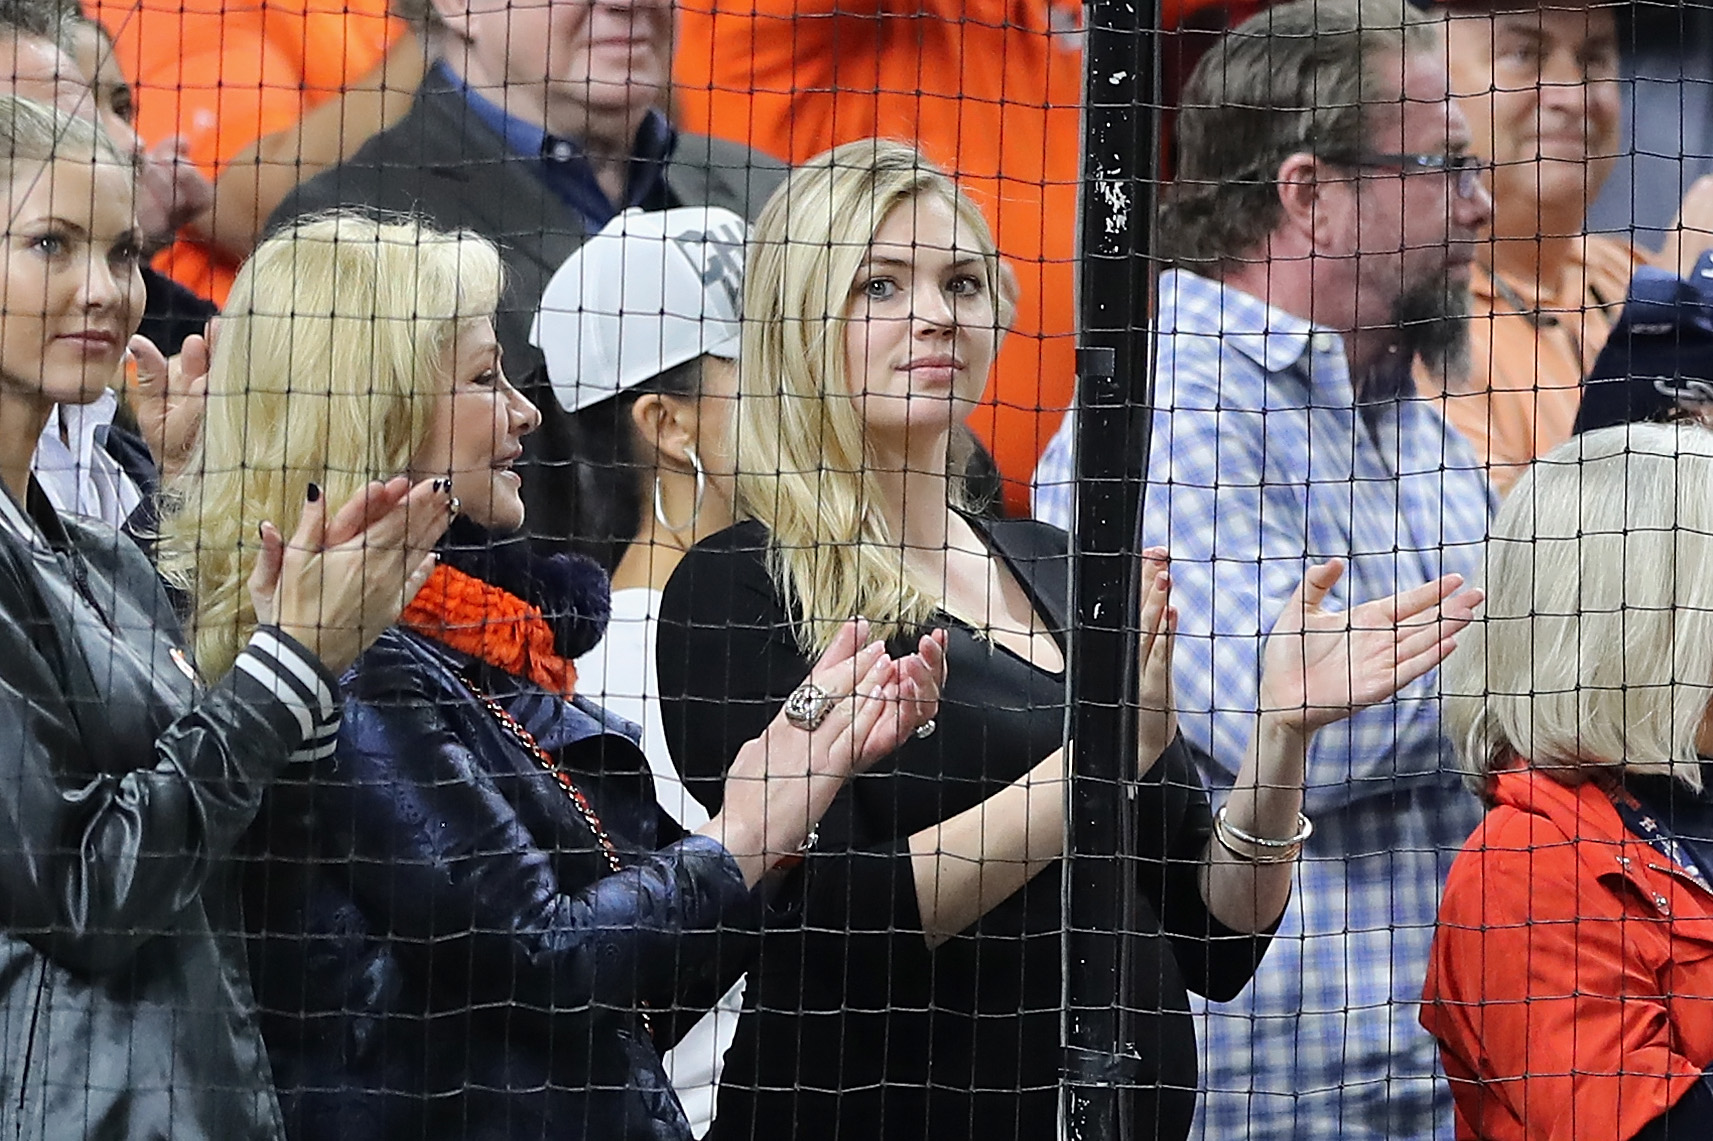 HOUSTON, TX - OCTOBER 17:  Kate Upton, wife of Justin Verlander #35 of the Houston Astros (not pictured), attends Game Four of the American League Championship Series between the Boston Red Sox and the Houston Astros at Minute Maid Park on October 17, 2018 in Houston, Texas.  (Photo by Elsa/Getty Images)